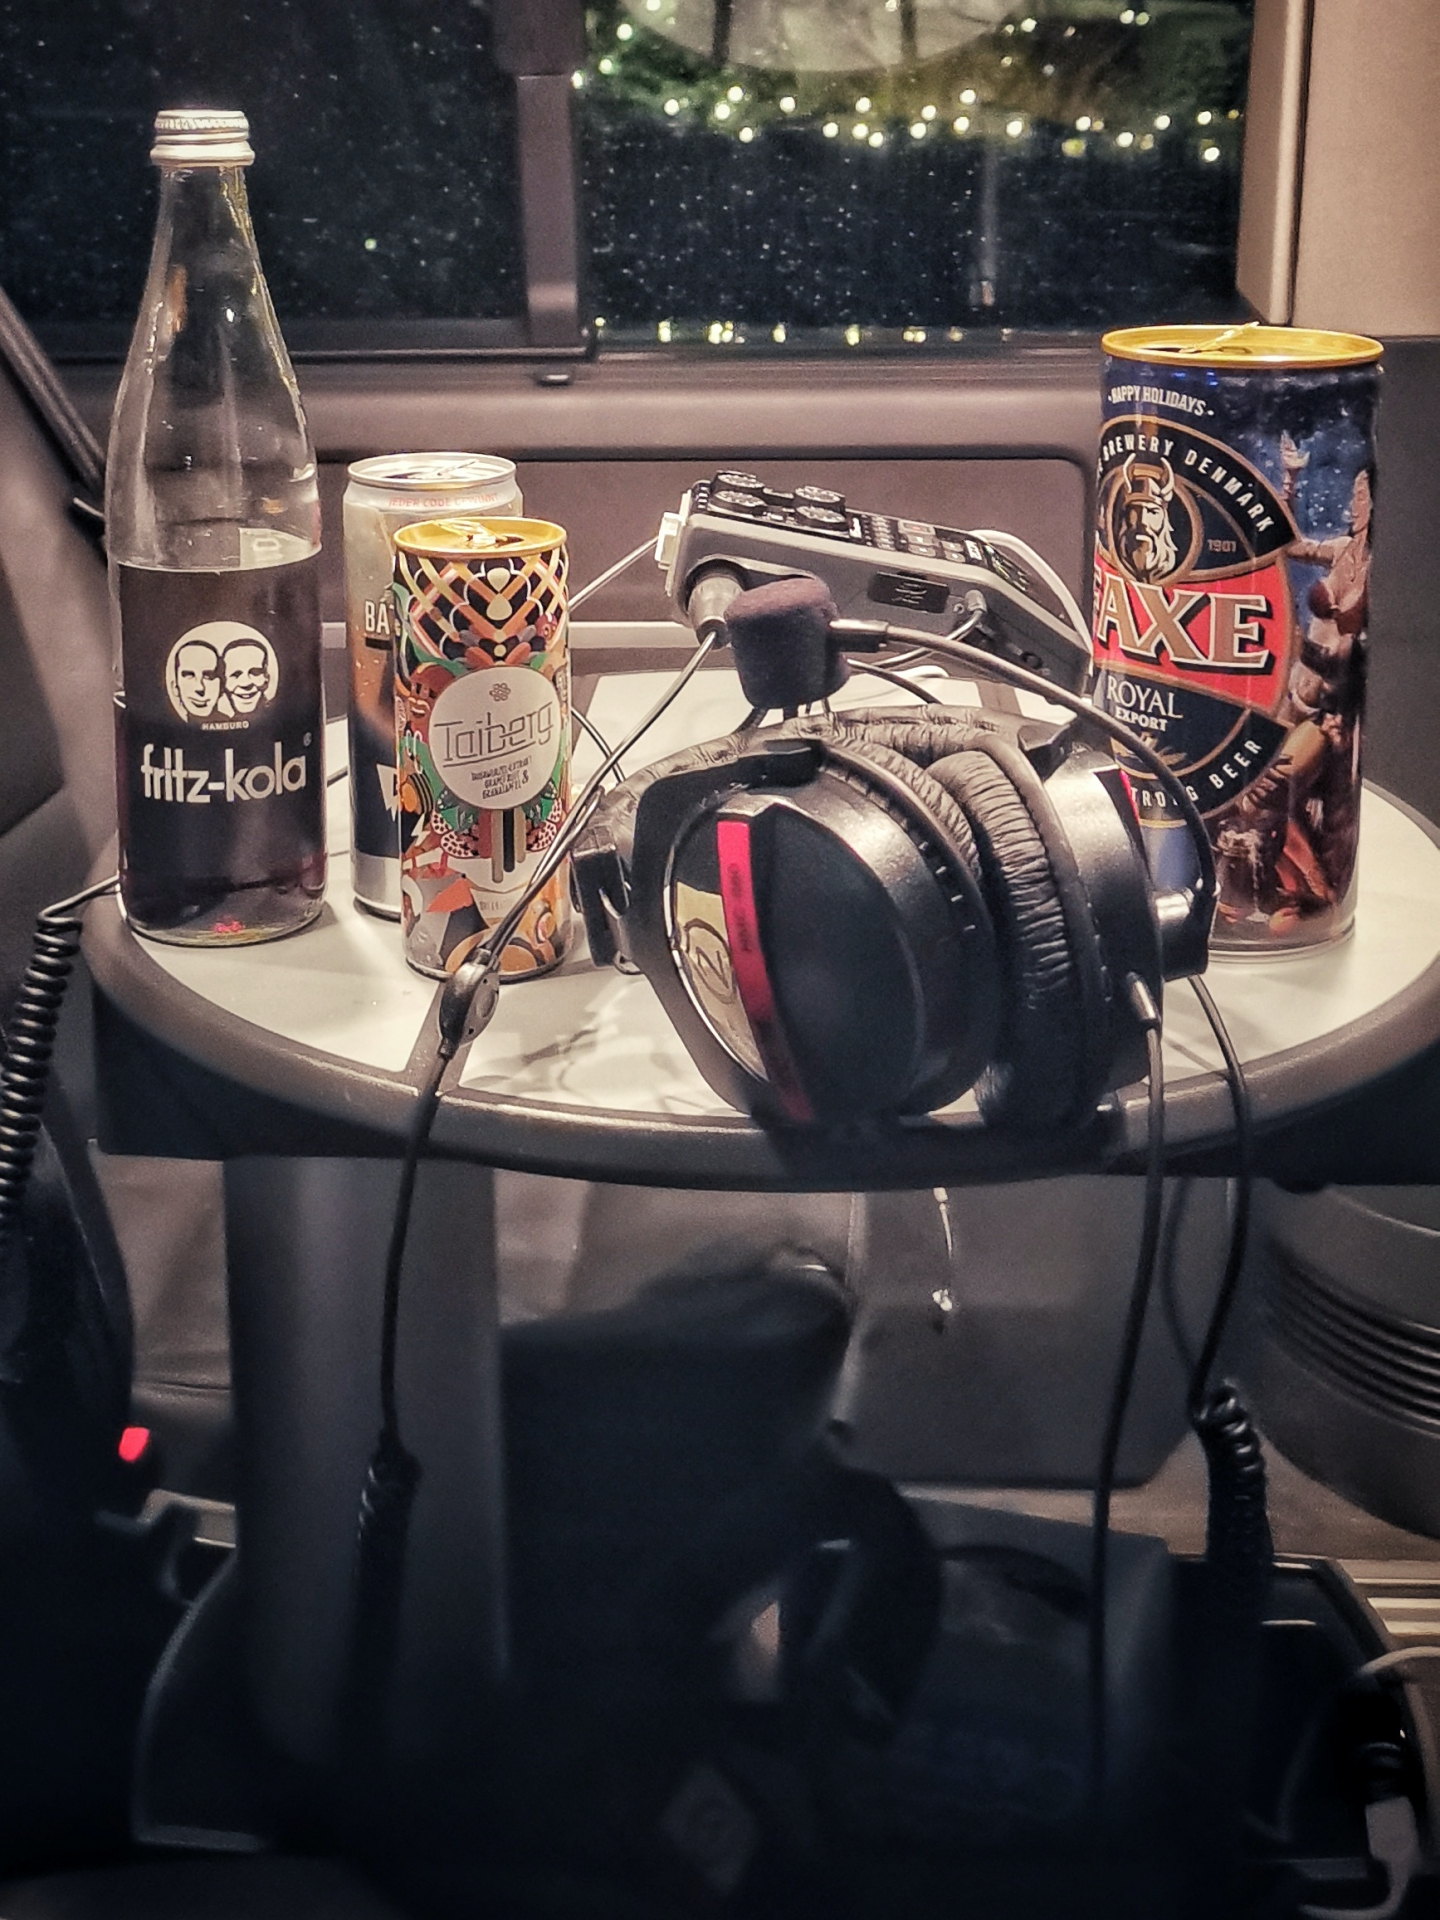 Dosen Bier Energy Drink Headphone